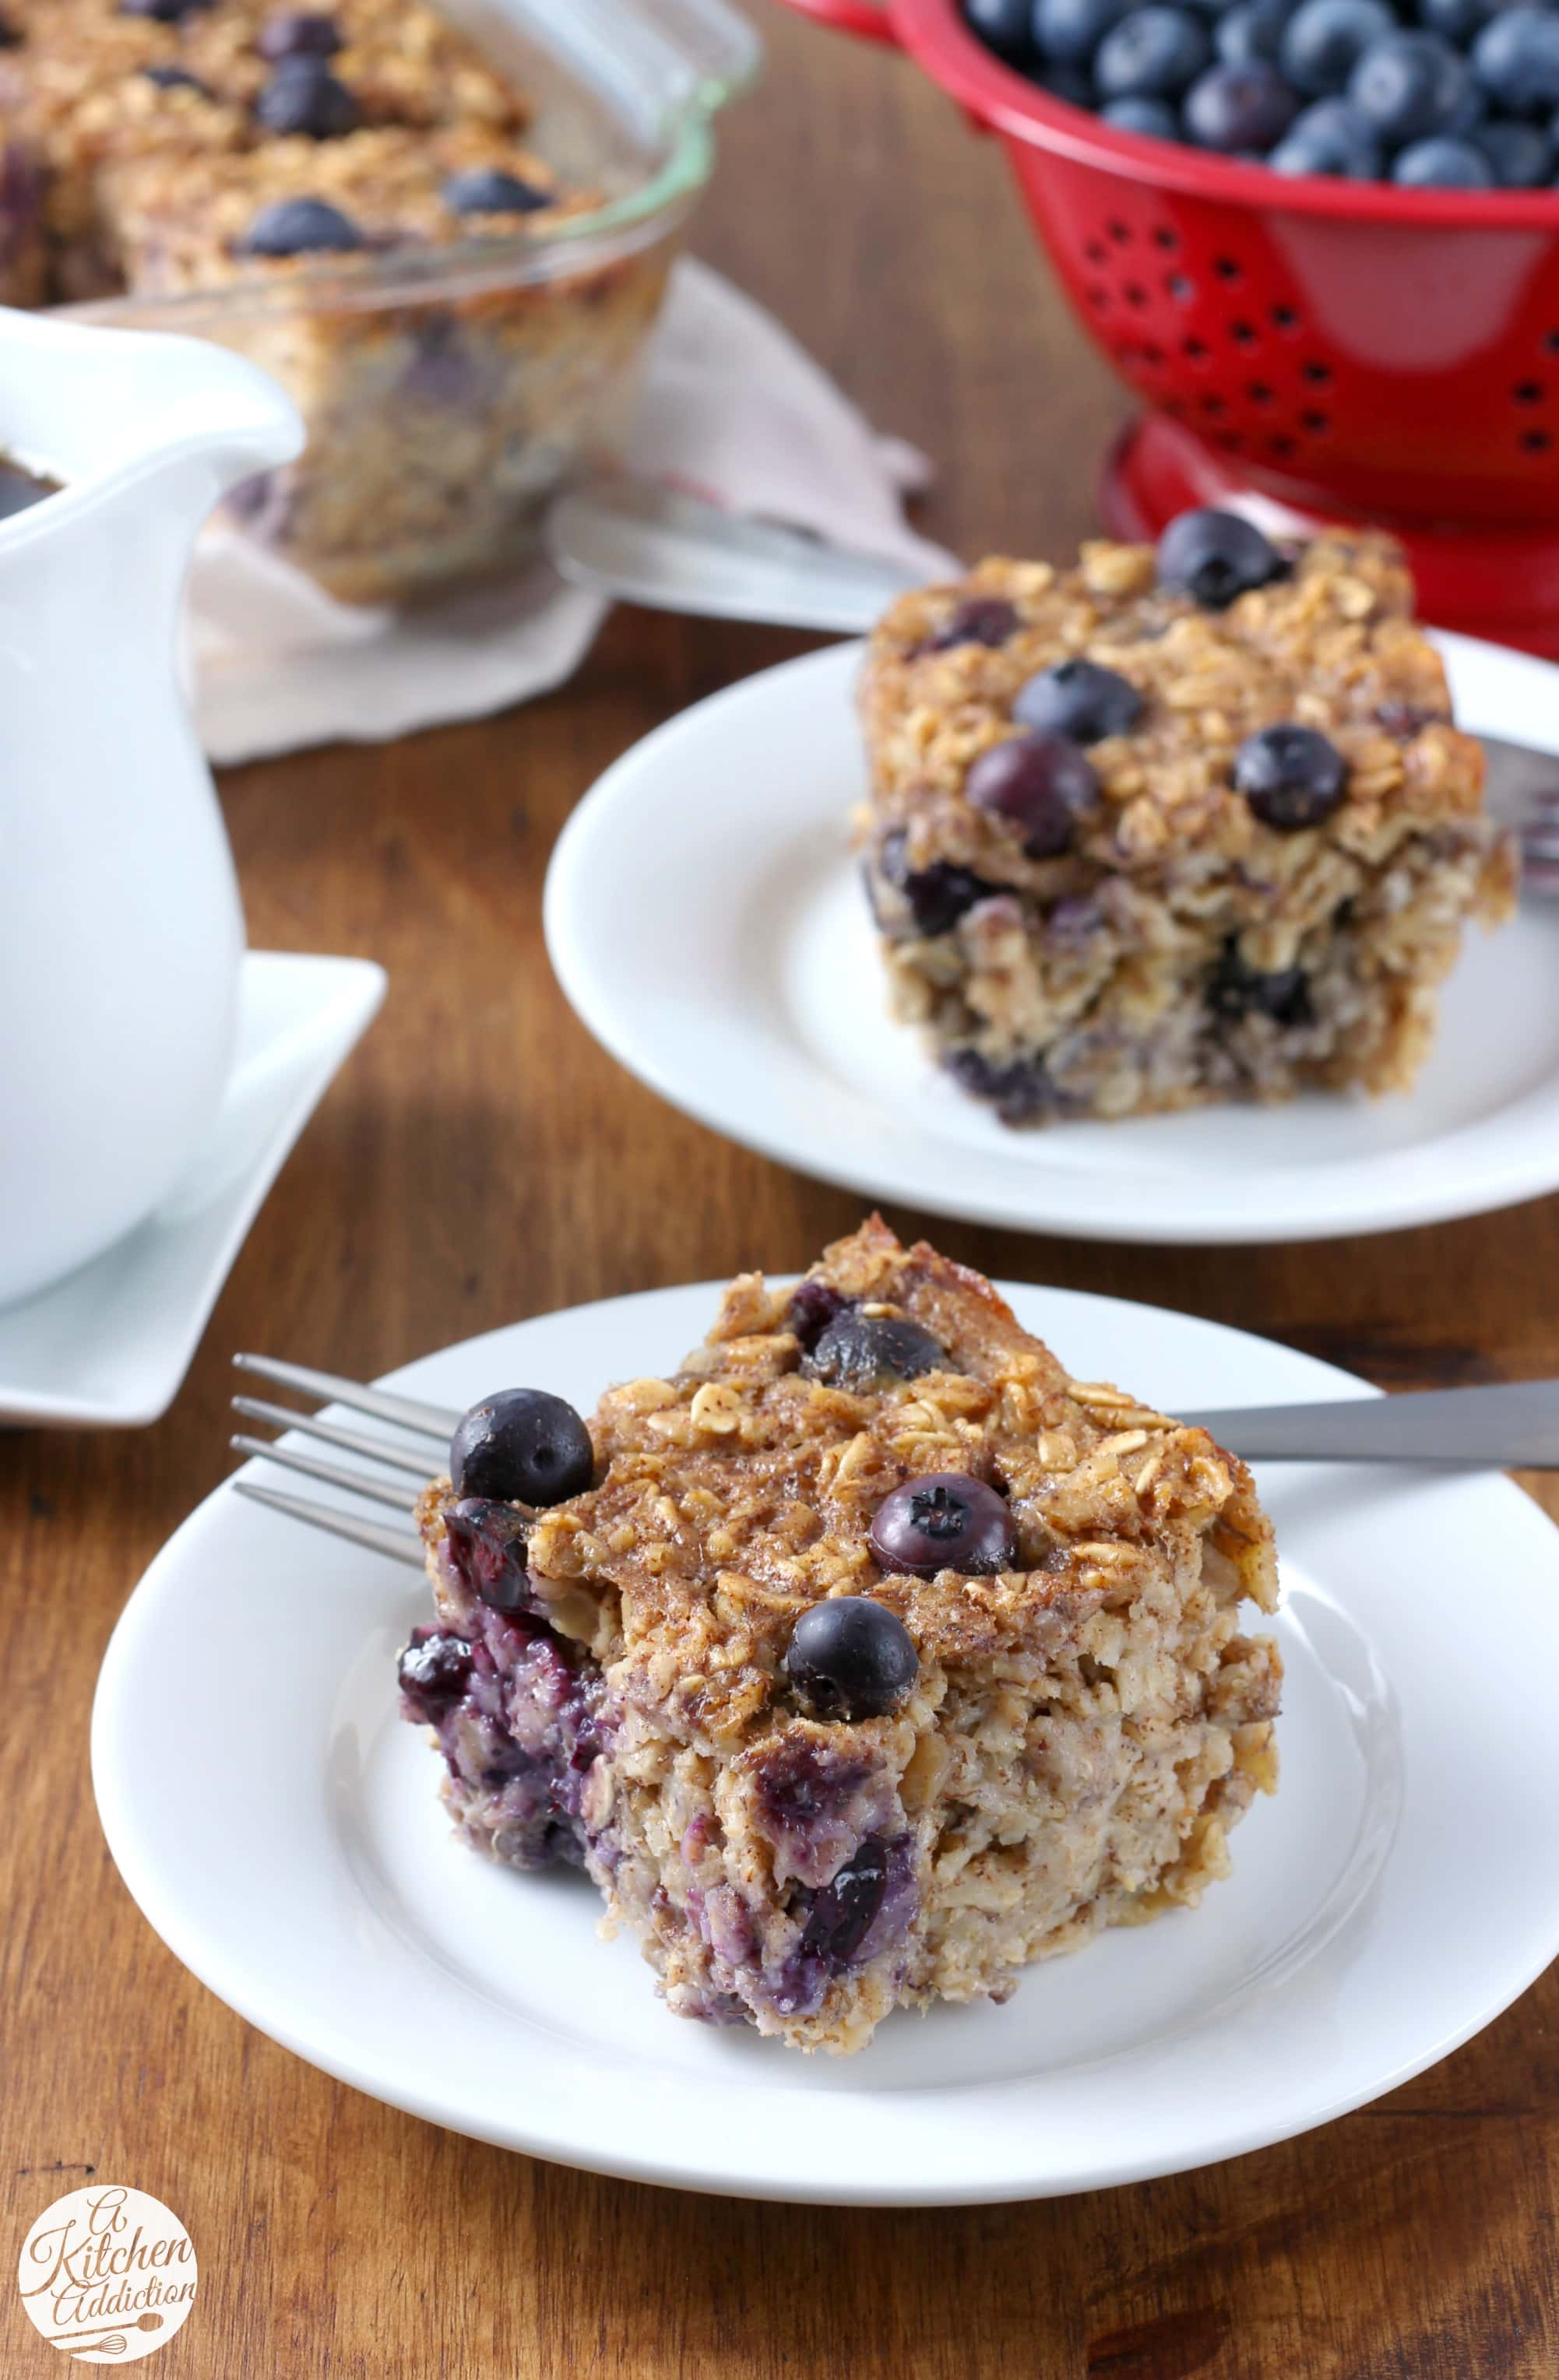 Hearty Blueberry Banana Bread Baked Oatmeal Recipe from A Kitchen Addiction